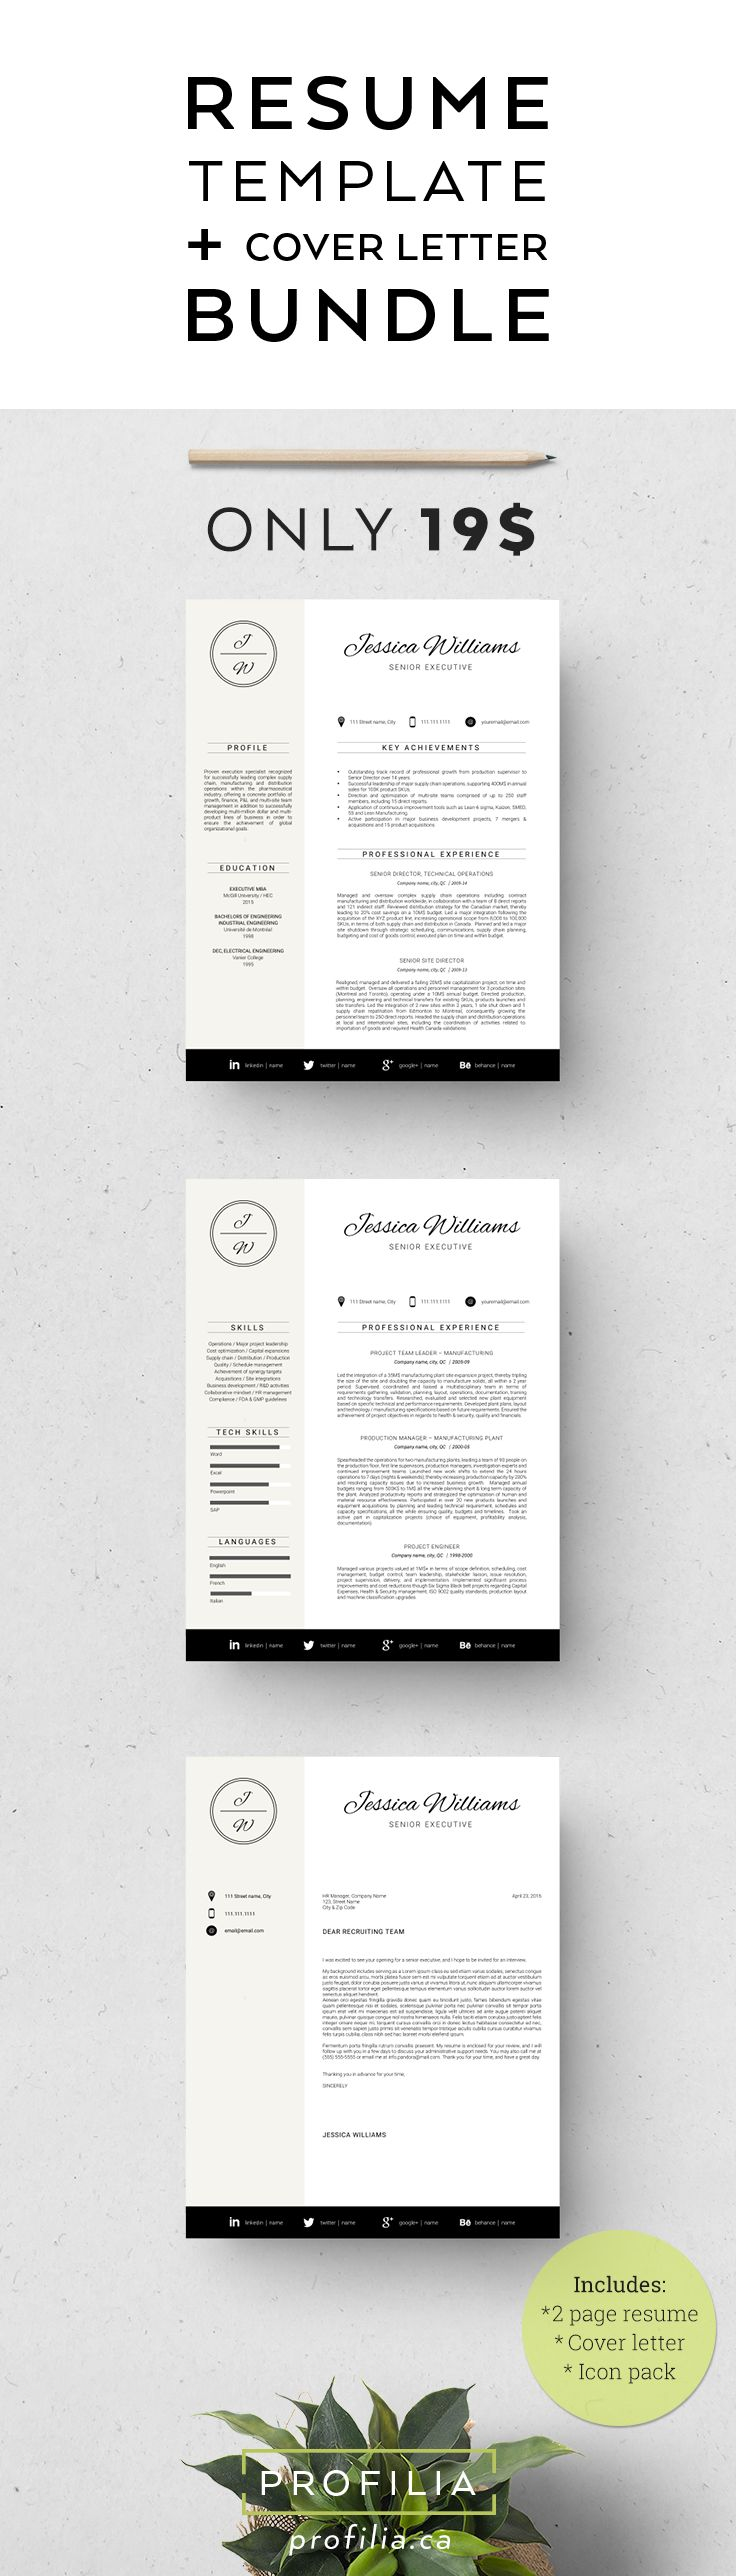 Great 1 Page Resume Format Download Thin 1 Page Resume Or 2 Solid 1 Year Experience Java Resume Format 11x17 Graph Paper Template Old 15 Year Old Funny Resume Gray15 Year Old Student Resume 25  Best Ideas About Cover Letter Format On Pinterest ..